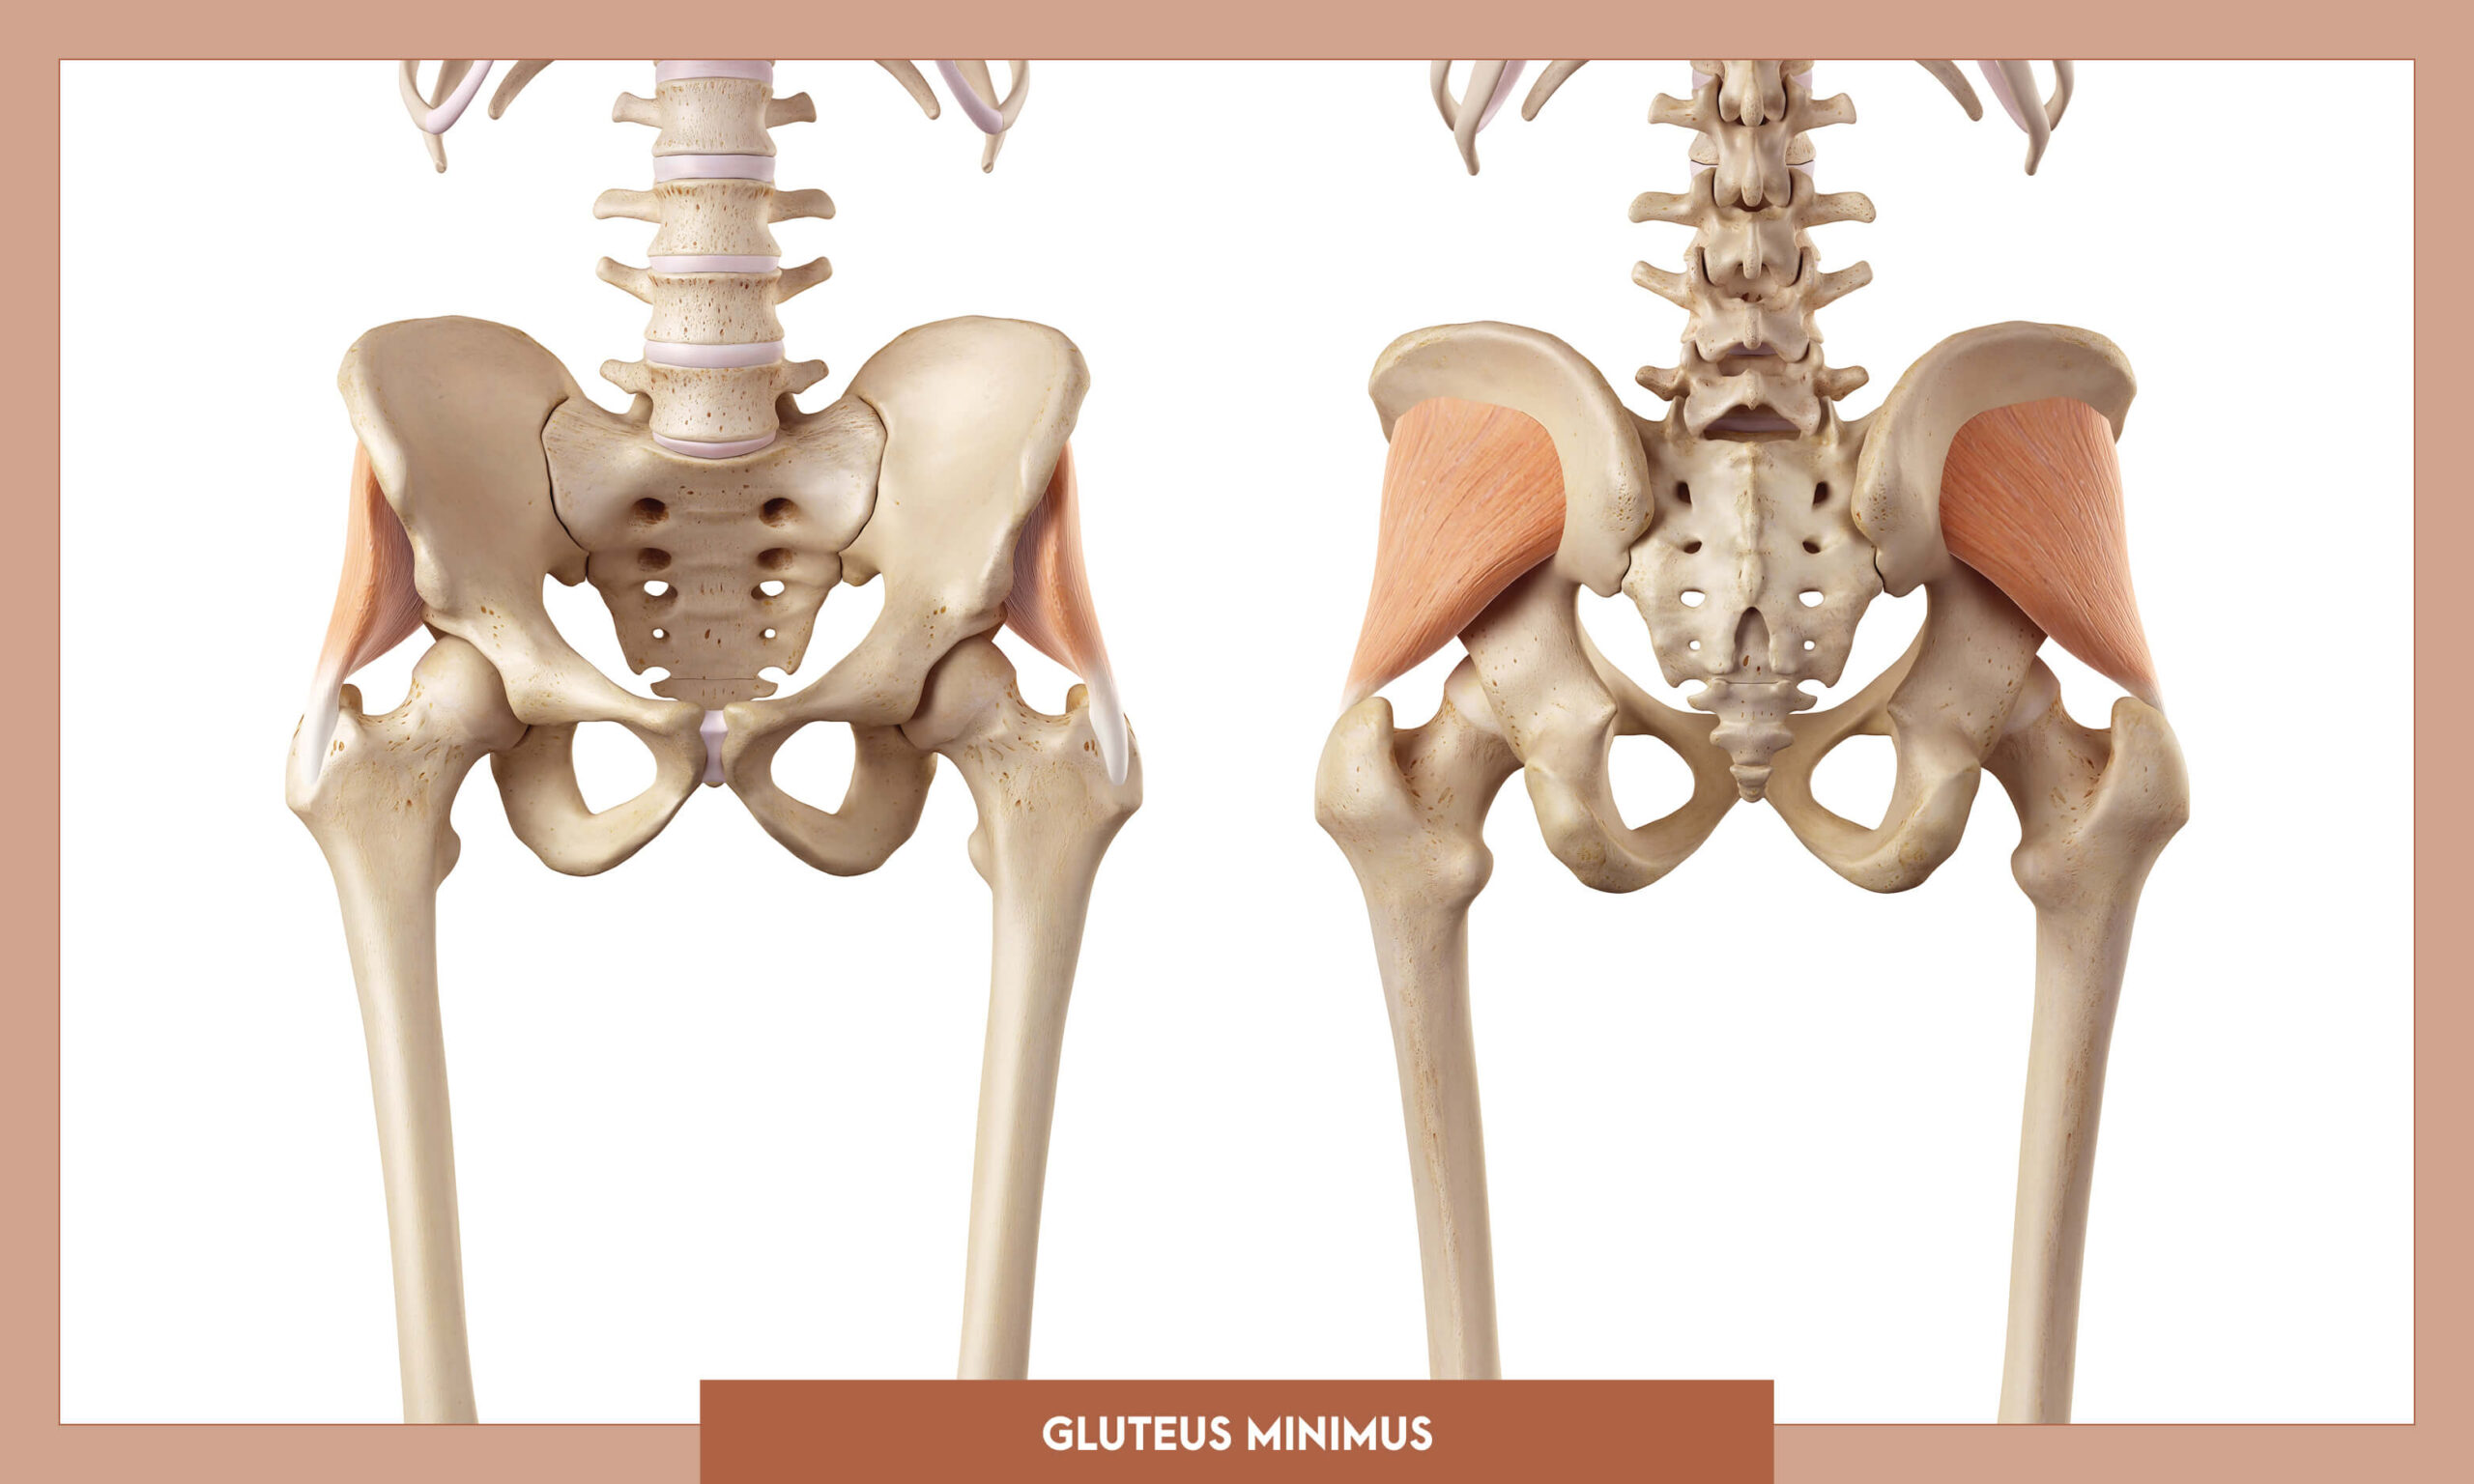 Muscles of thee Lower Limb - Gluteus minimus